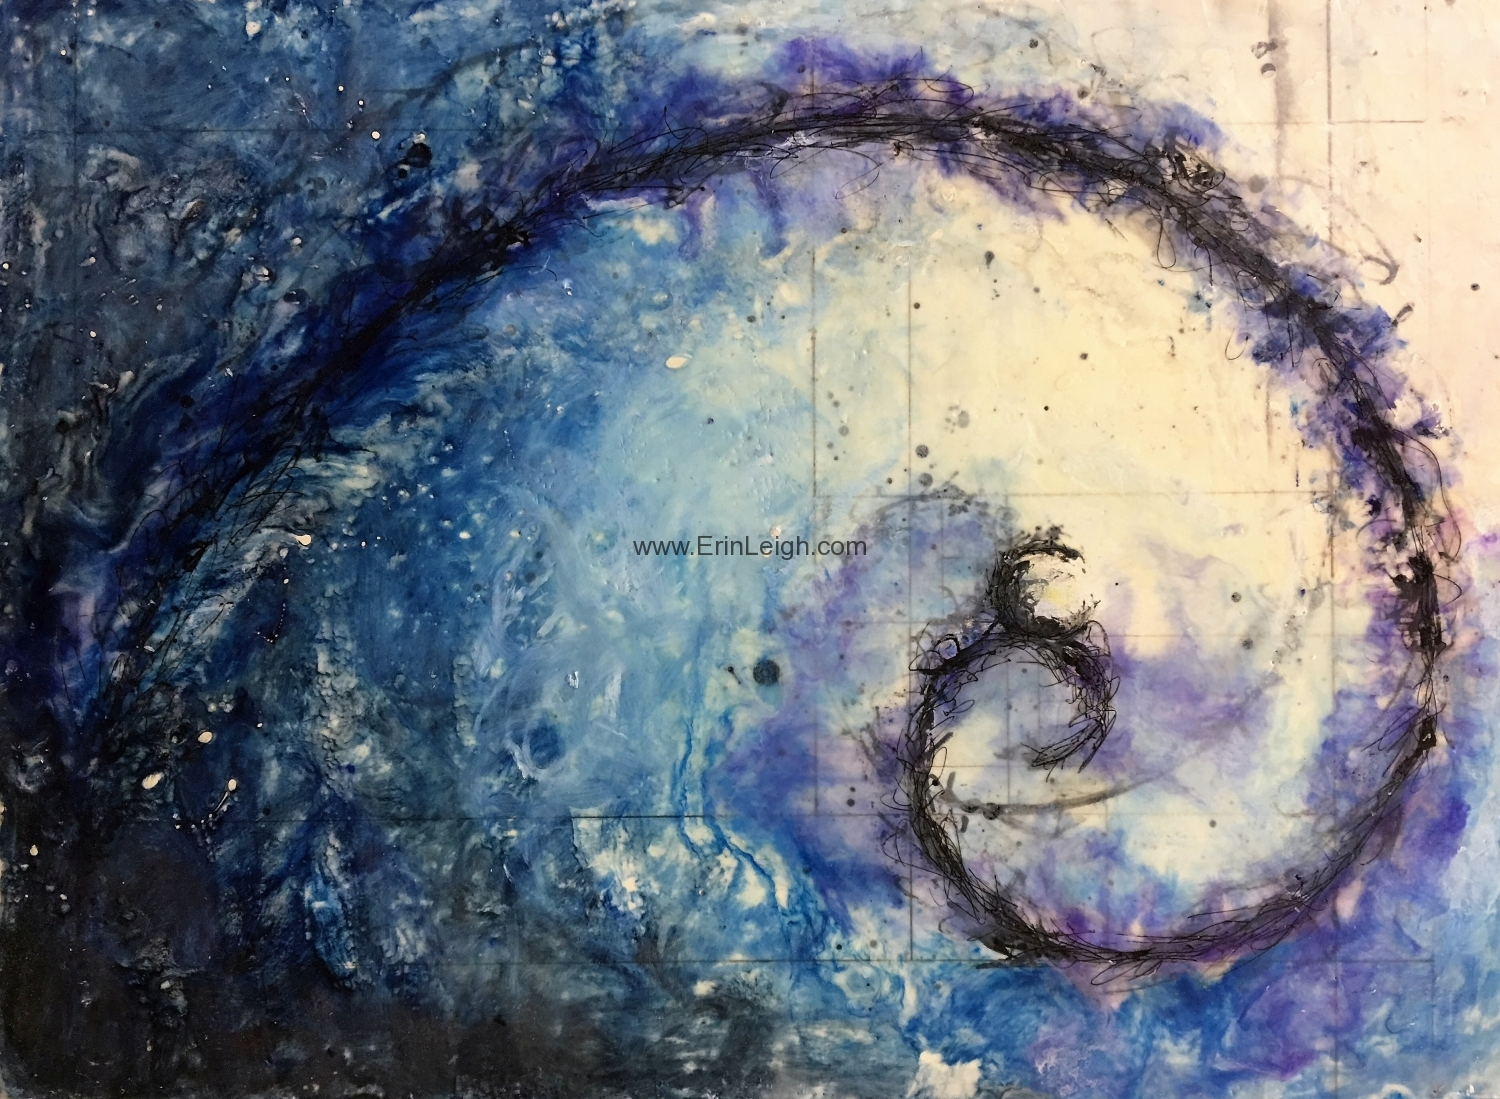 Transform - Study 32 - Journey to One by Erin Leigh